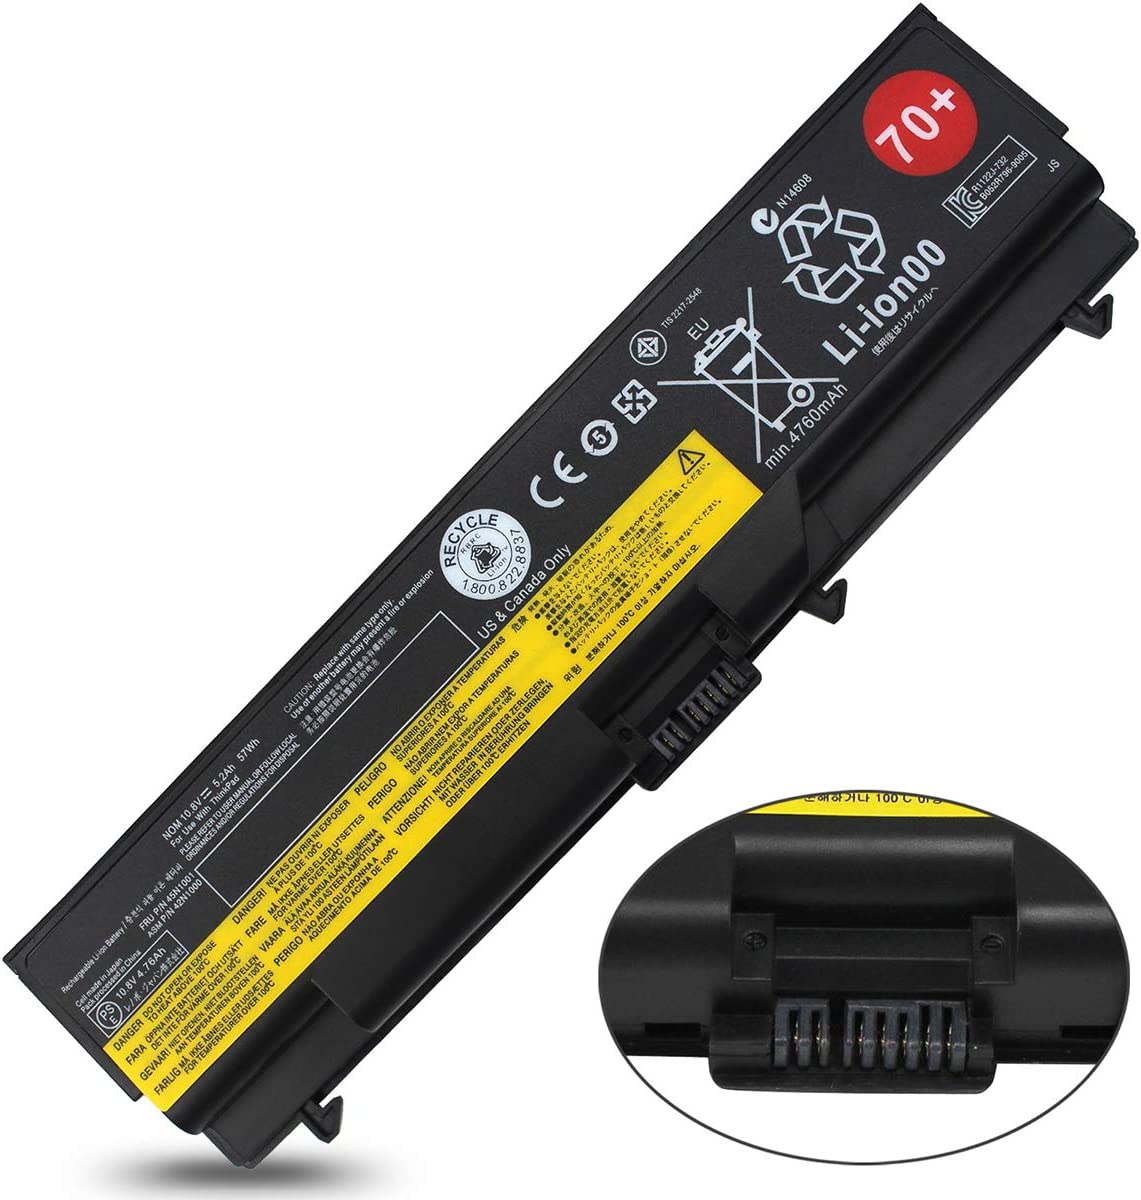 0A36303 0A36302 Laptop Battery Compatible with Lenovo ThinkPad T430 T530 W530 T420 T410 T520 T510 W510 W520 L412, 42T4751 42T4793 42T4755 42T4763 42T4848 45N1000 42T4791 51J0499 42T4235 (57Wh 6-Cell)